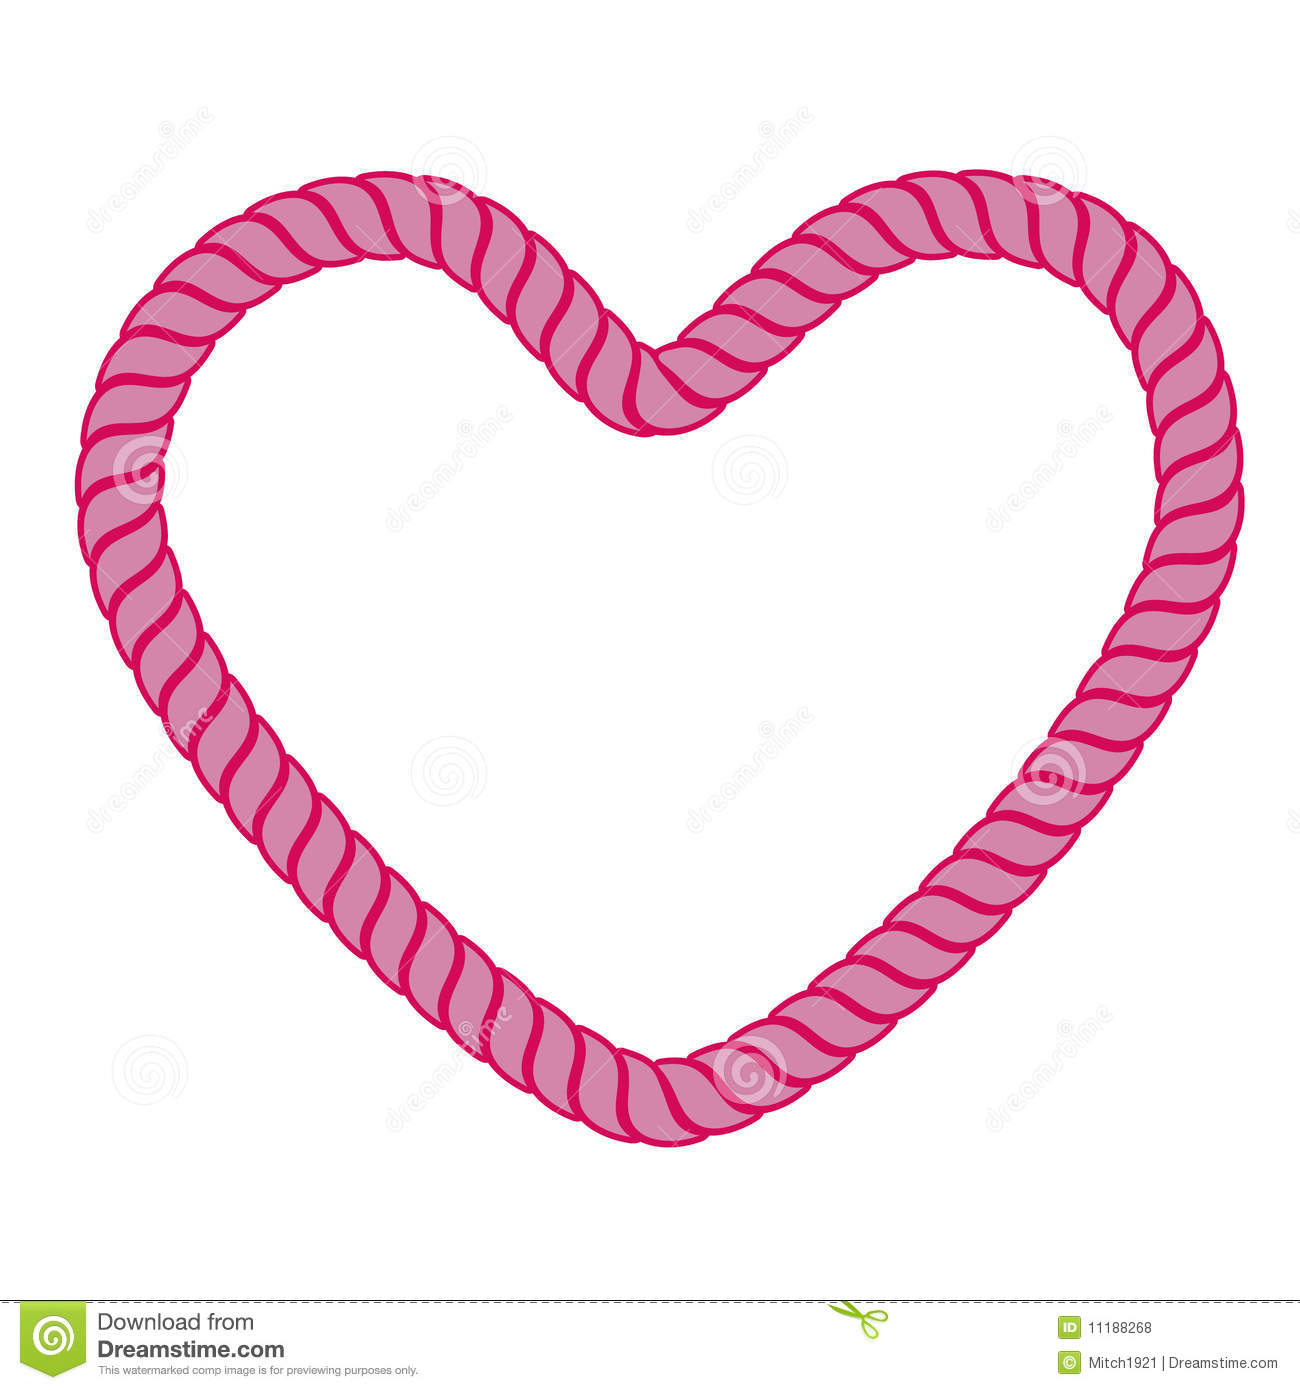 Illustration of pink heart rope isolated over white background.